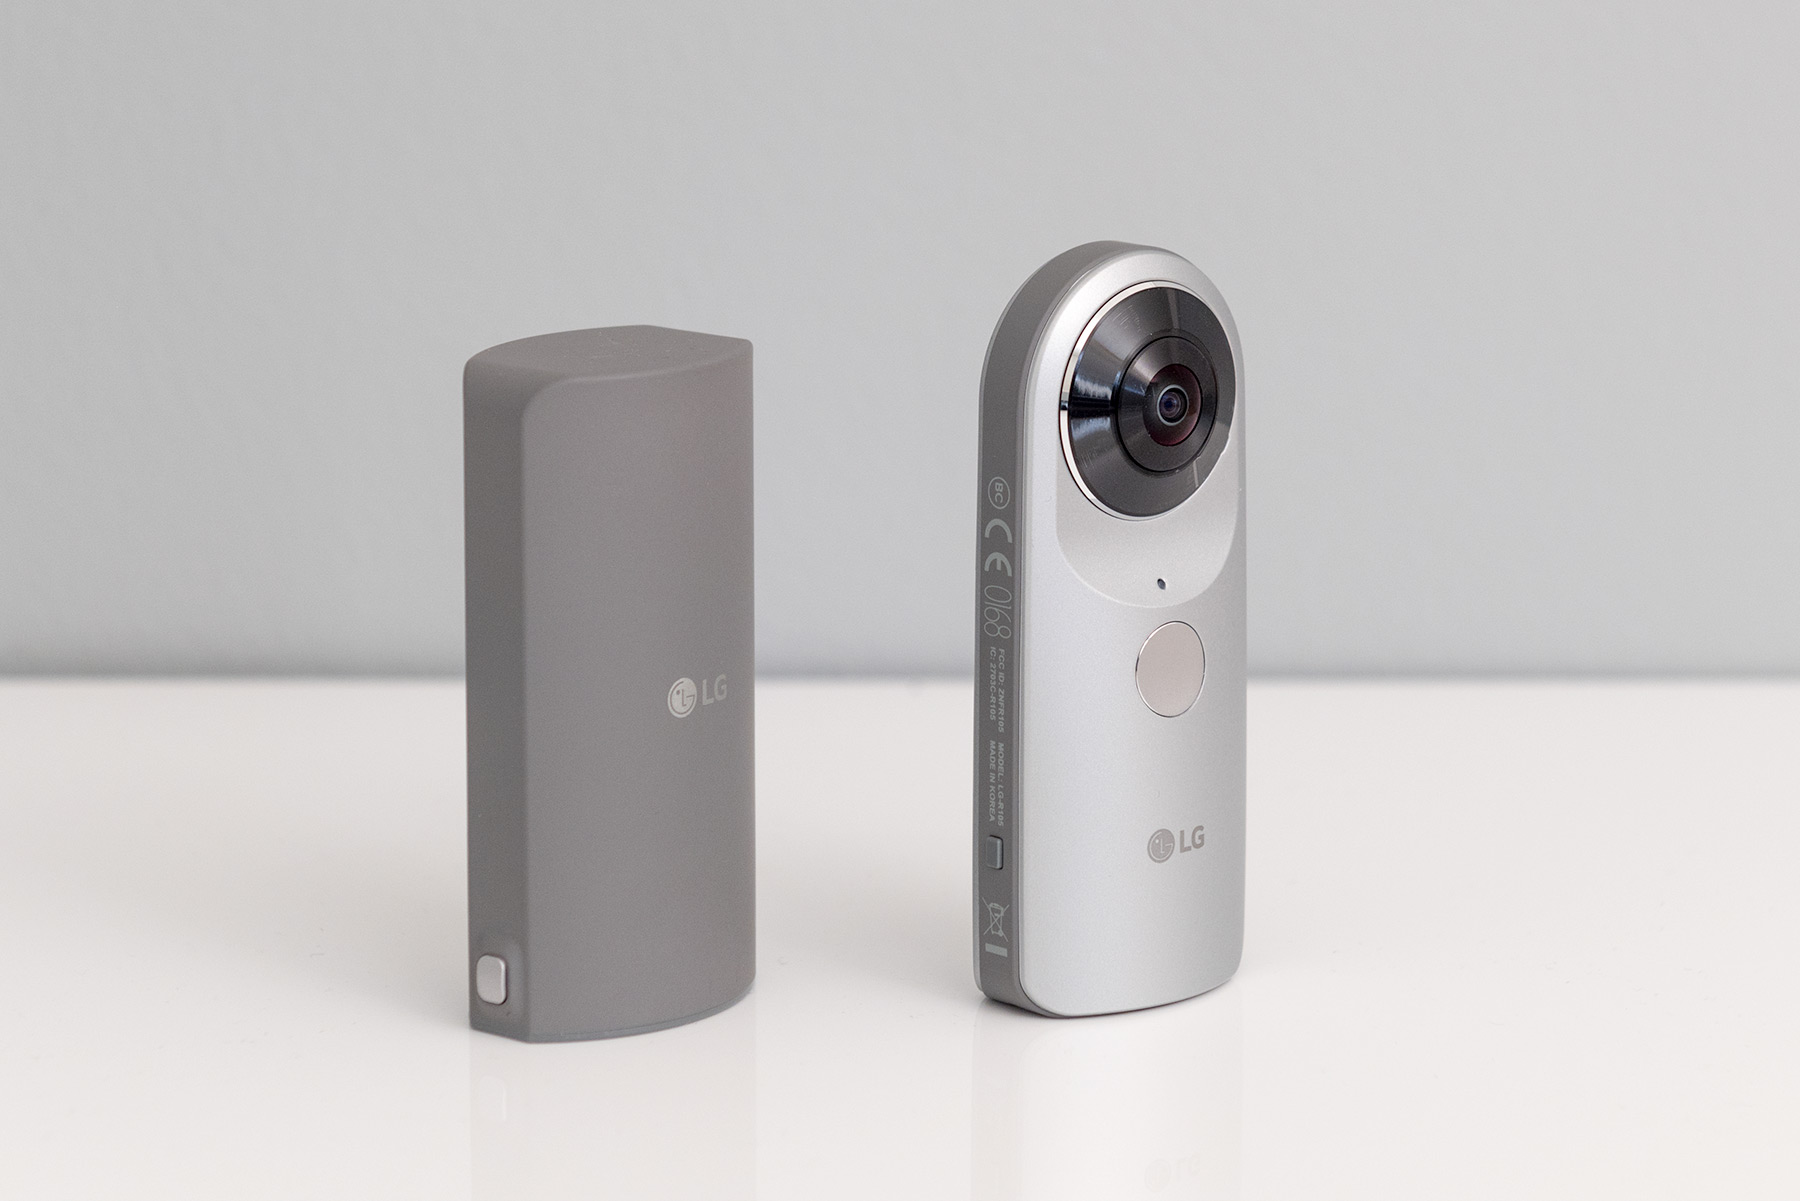 The LG 360 Cam and its cover detached.